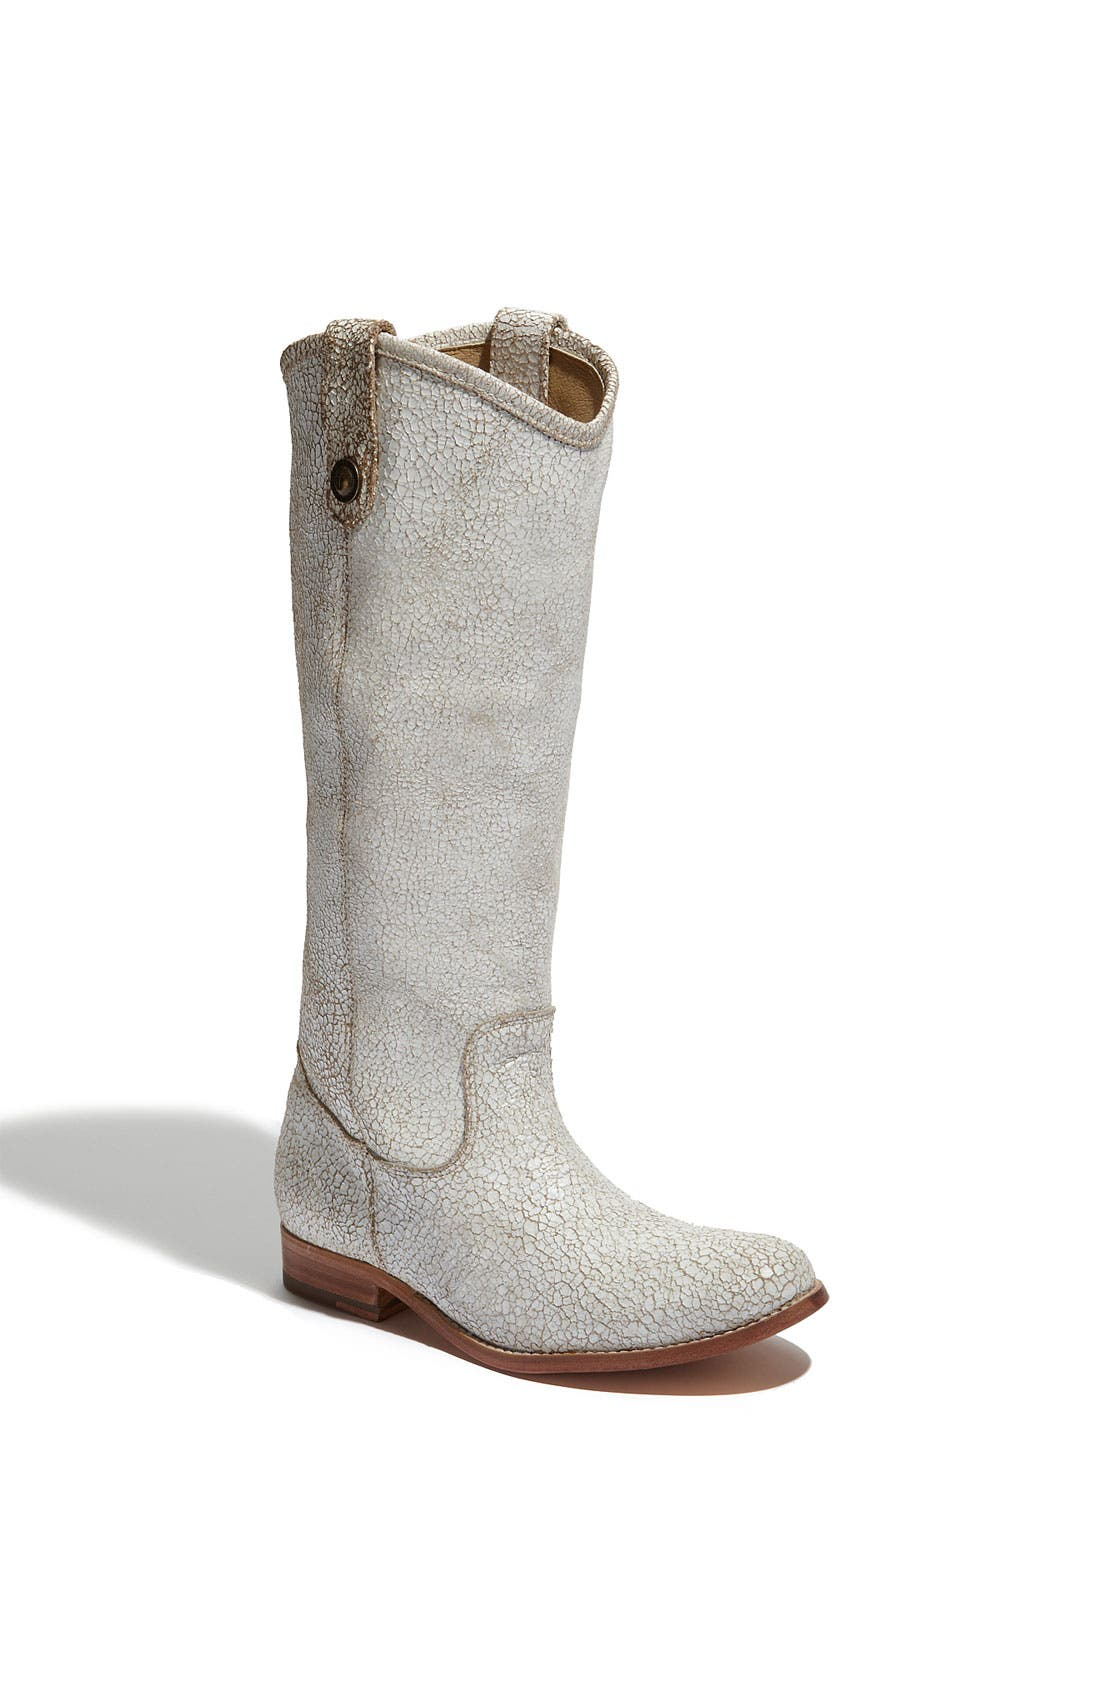 Alternate Image 1 Selected - Frye 'Melissa Button' Crackled Leather Boot